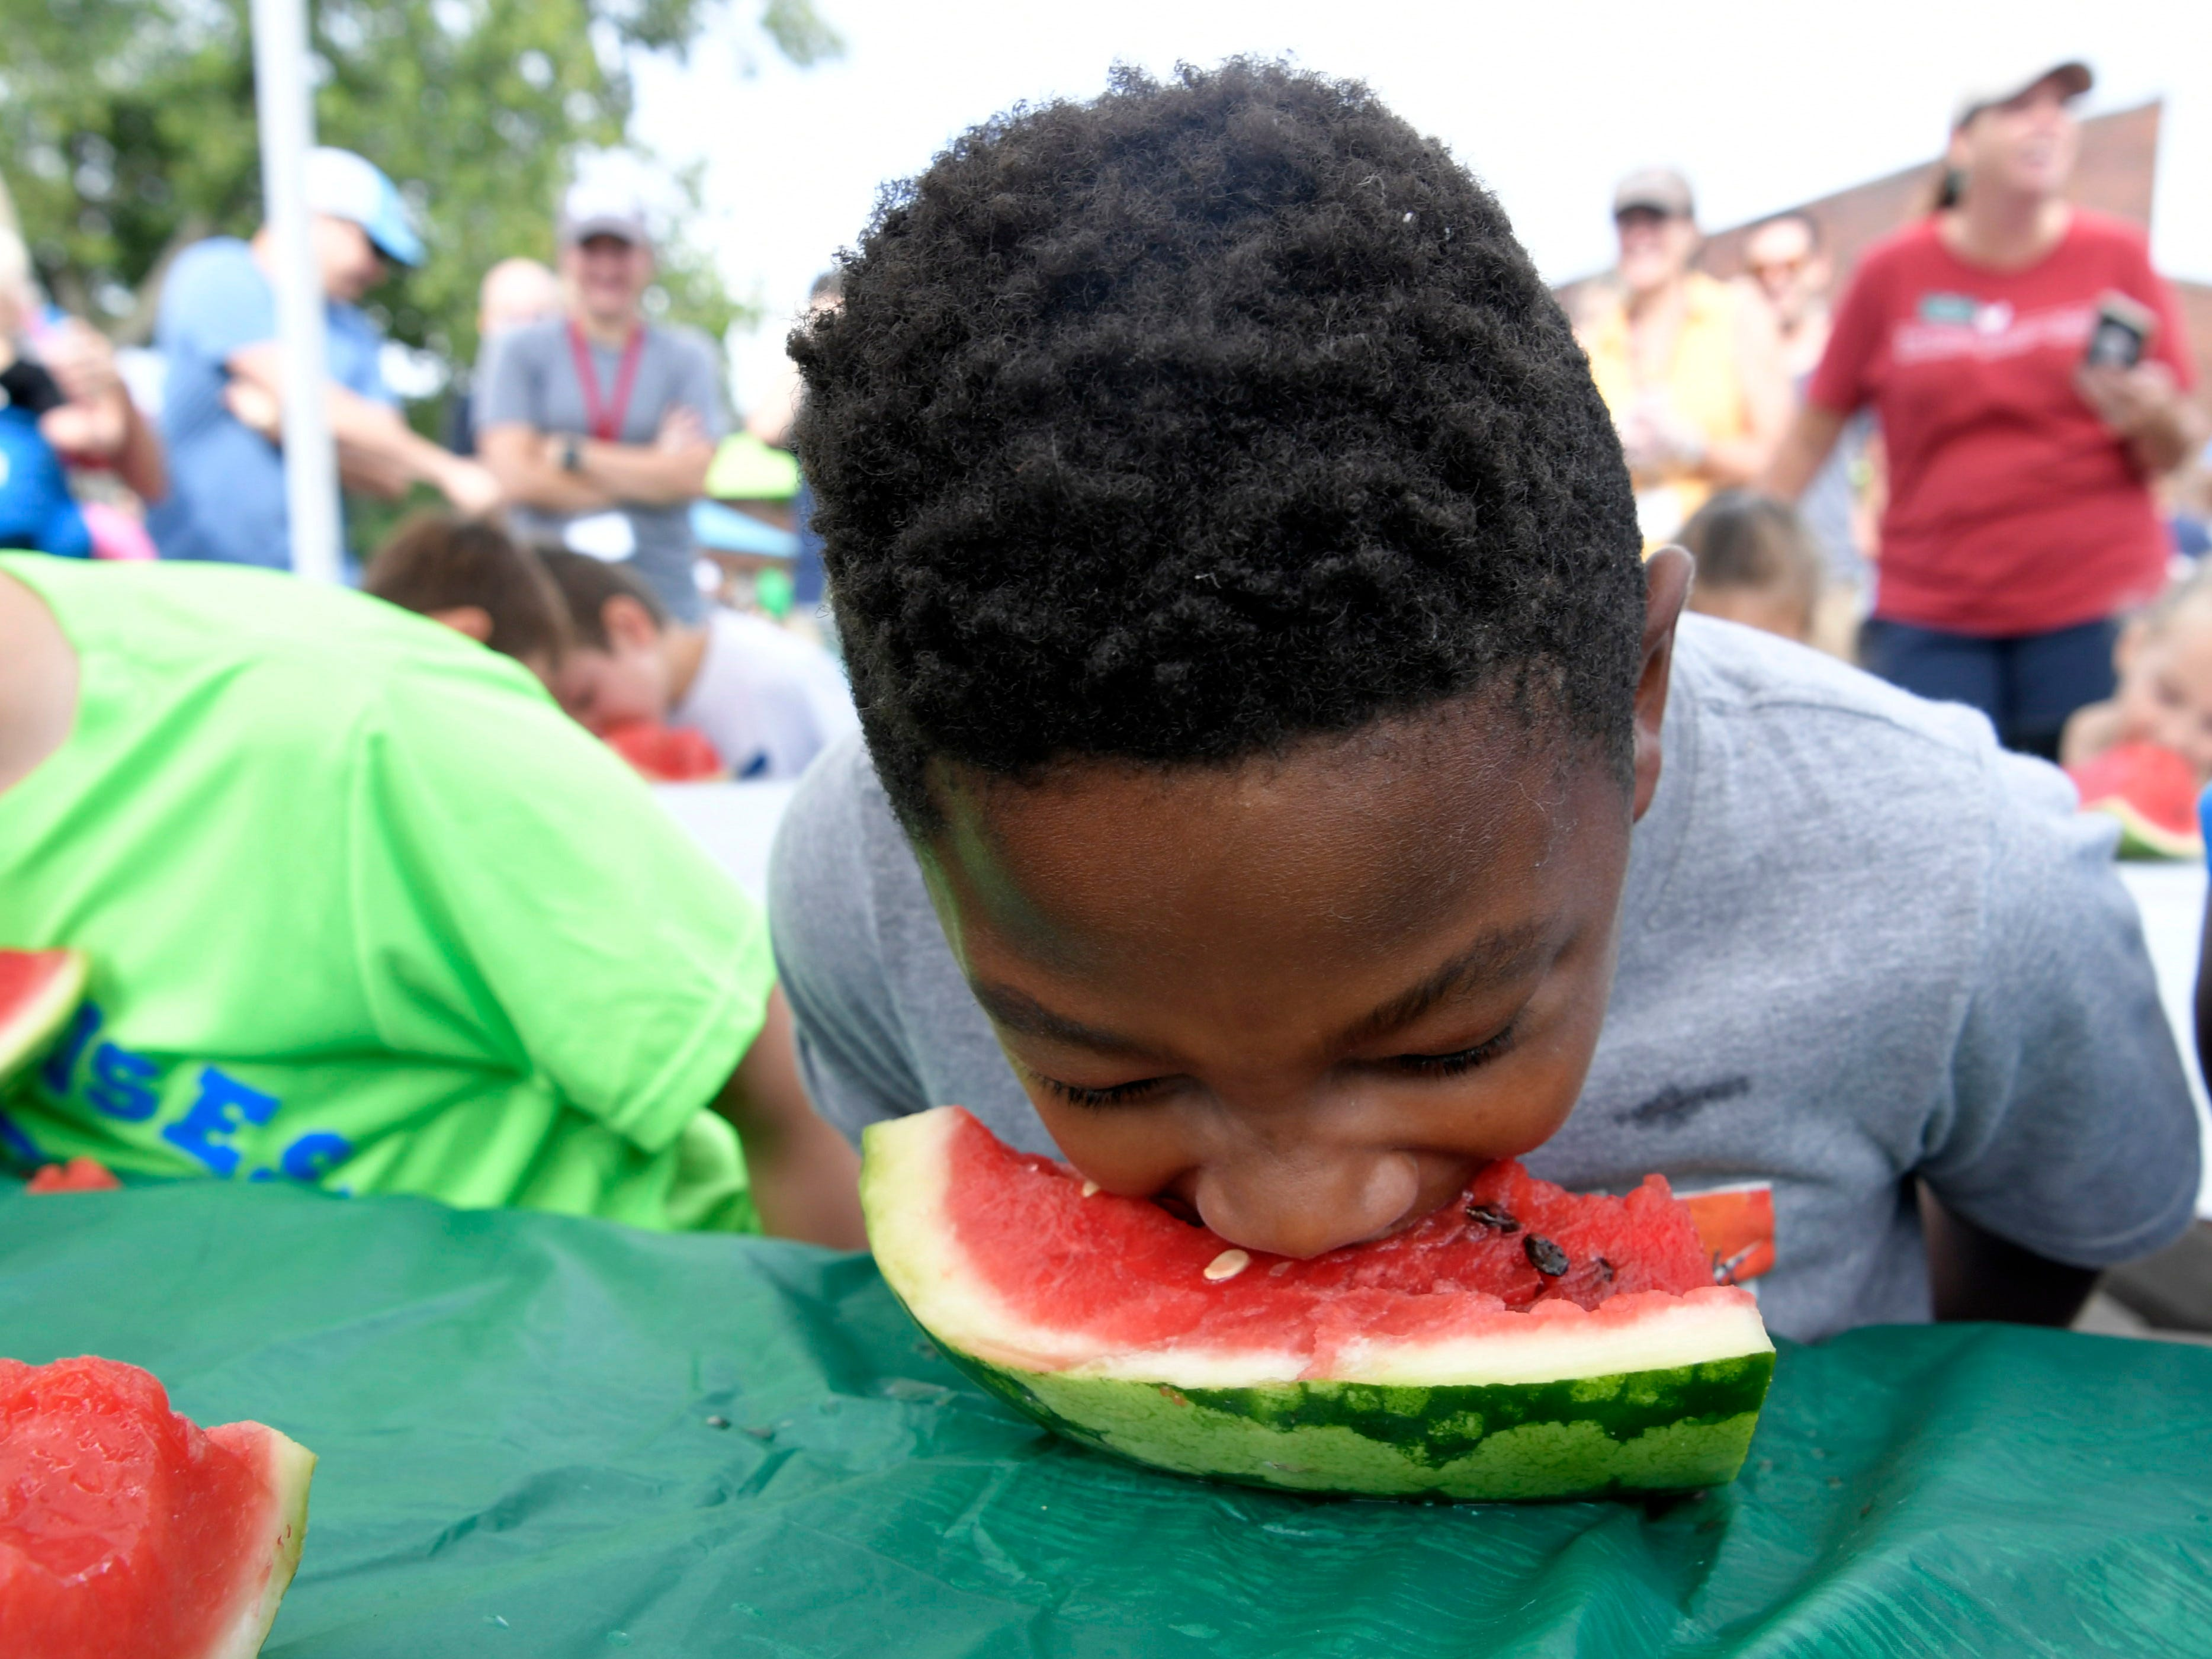 Shamaroin Cooksey,10, competes in the children's watermelon eating contest at the Franklin Farmers Market in Franklin, Tenn. on Saturday,  August 18, 2018.